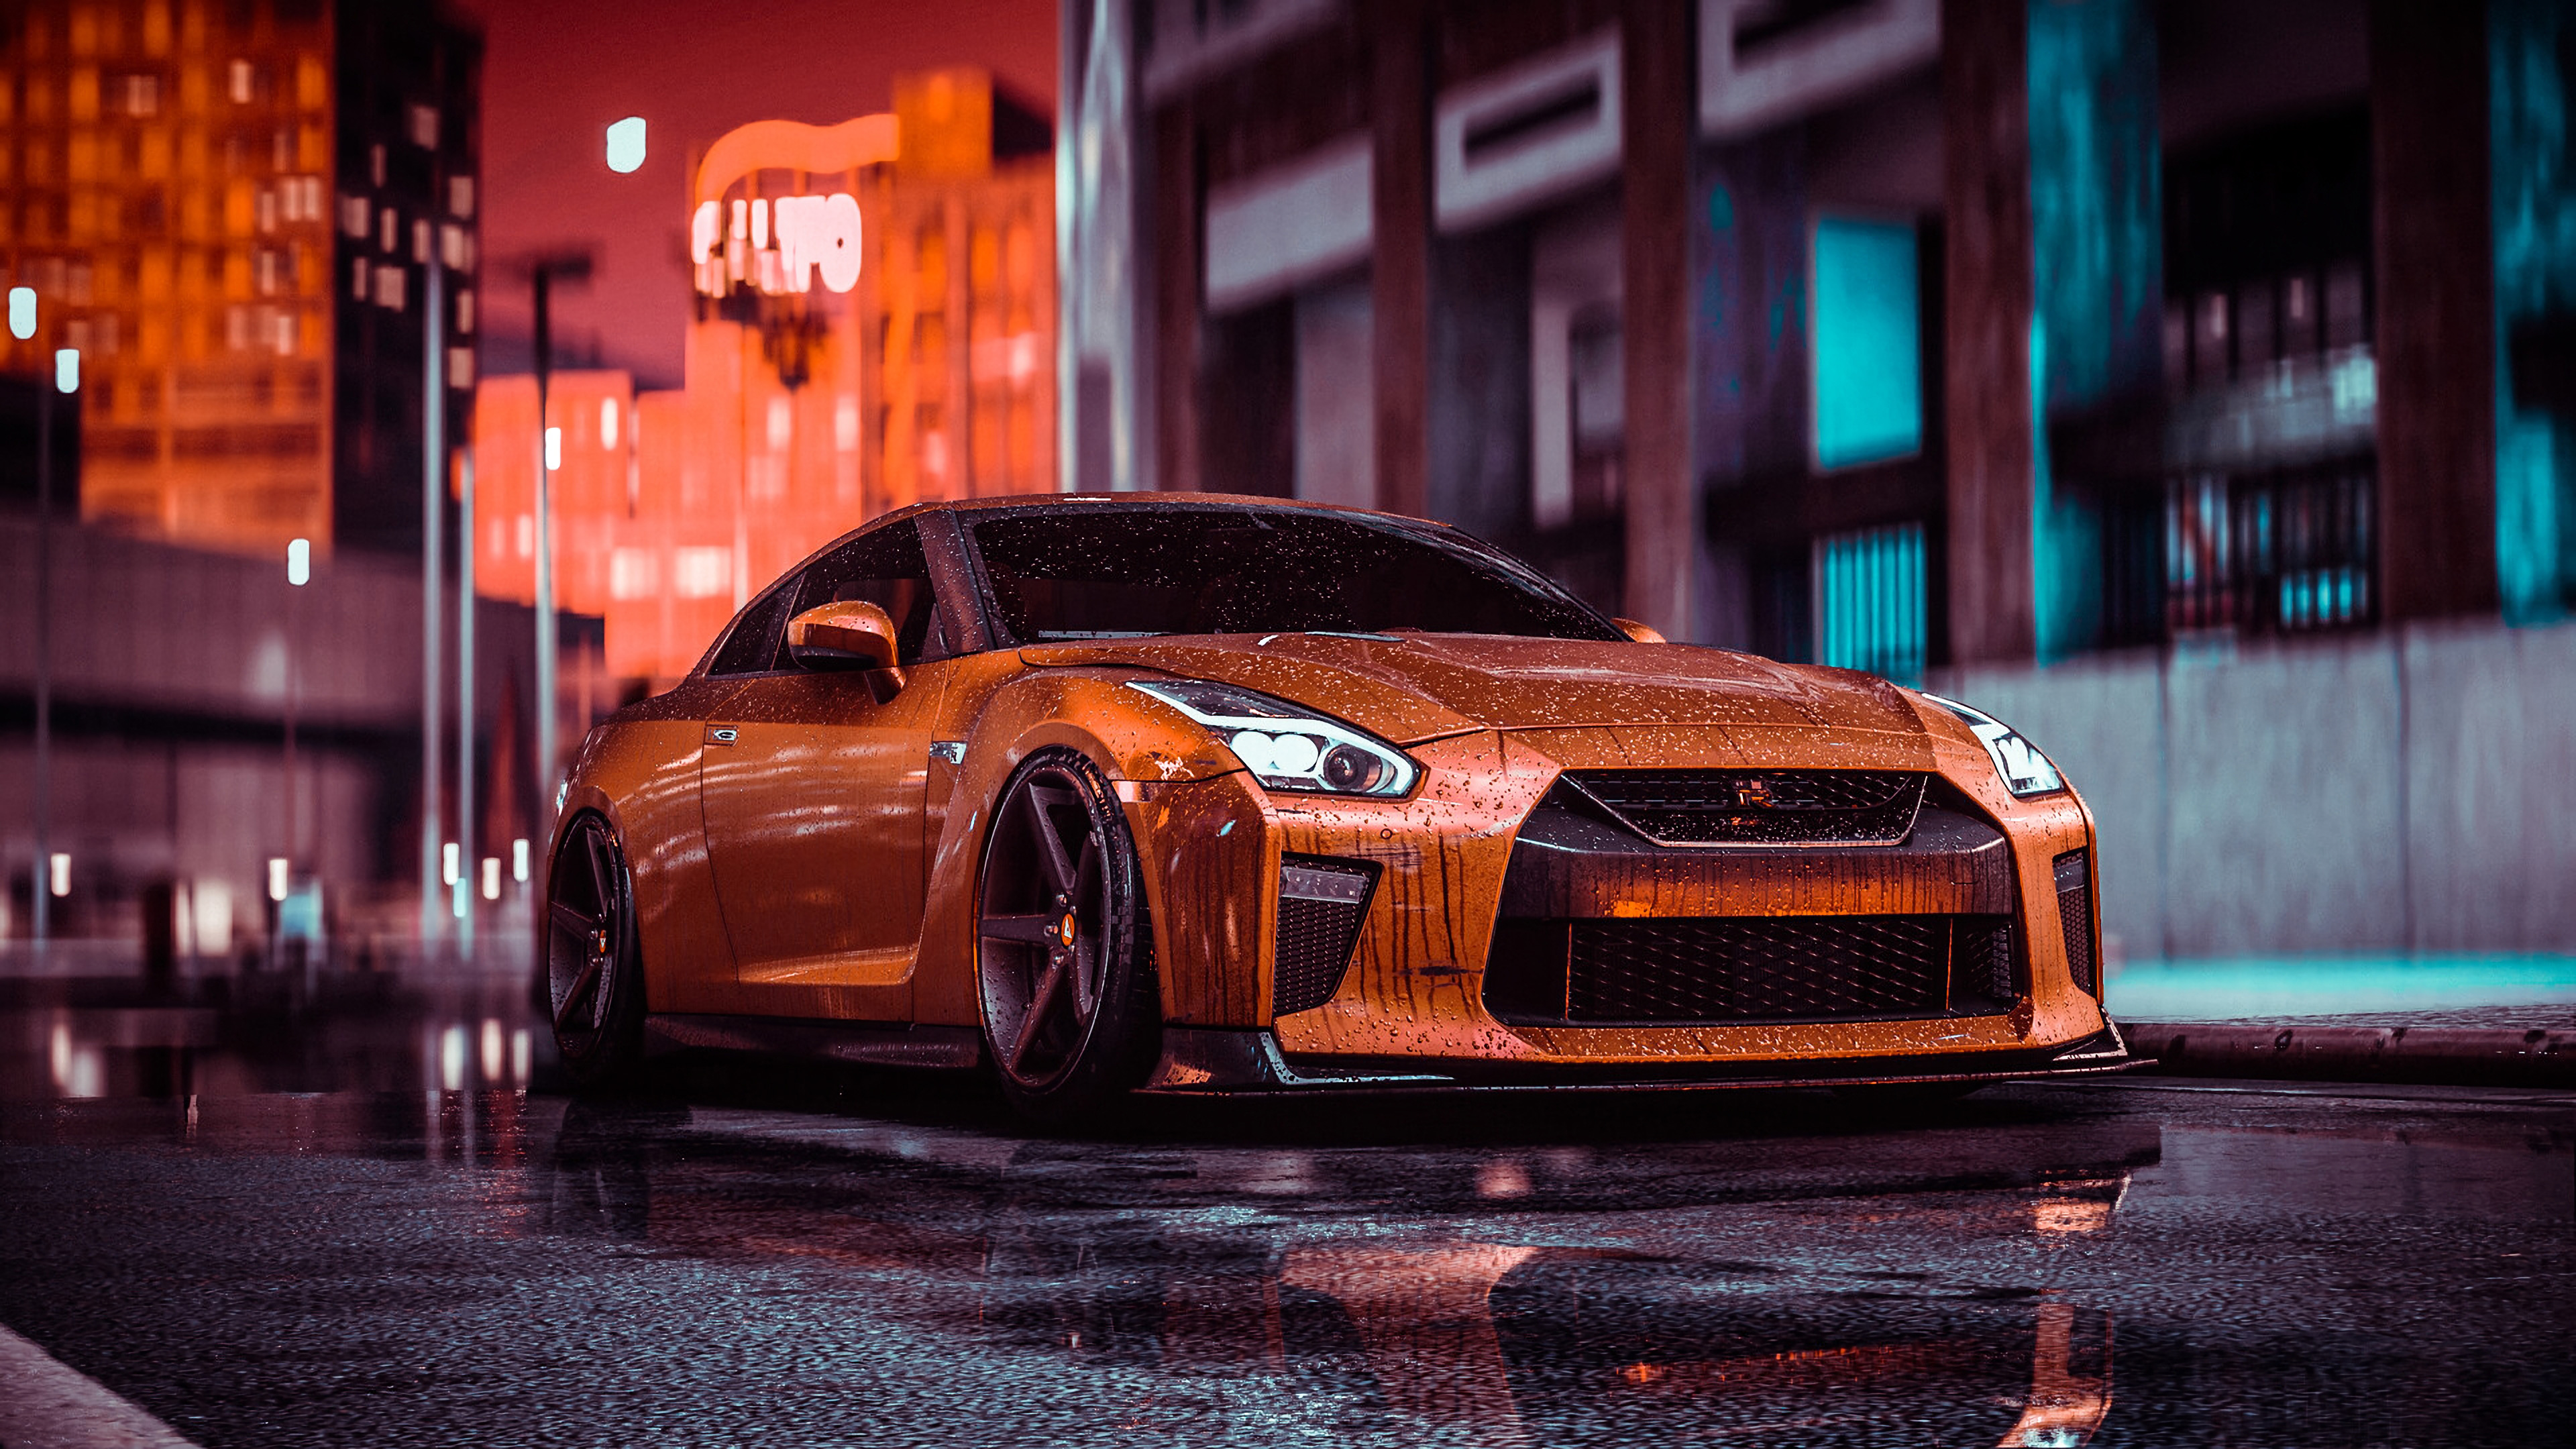 Nissan Gtr Nfs Front 4k, HD Cars, 4k Wallpapers, Images ...